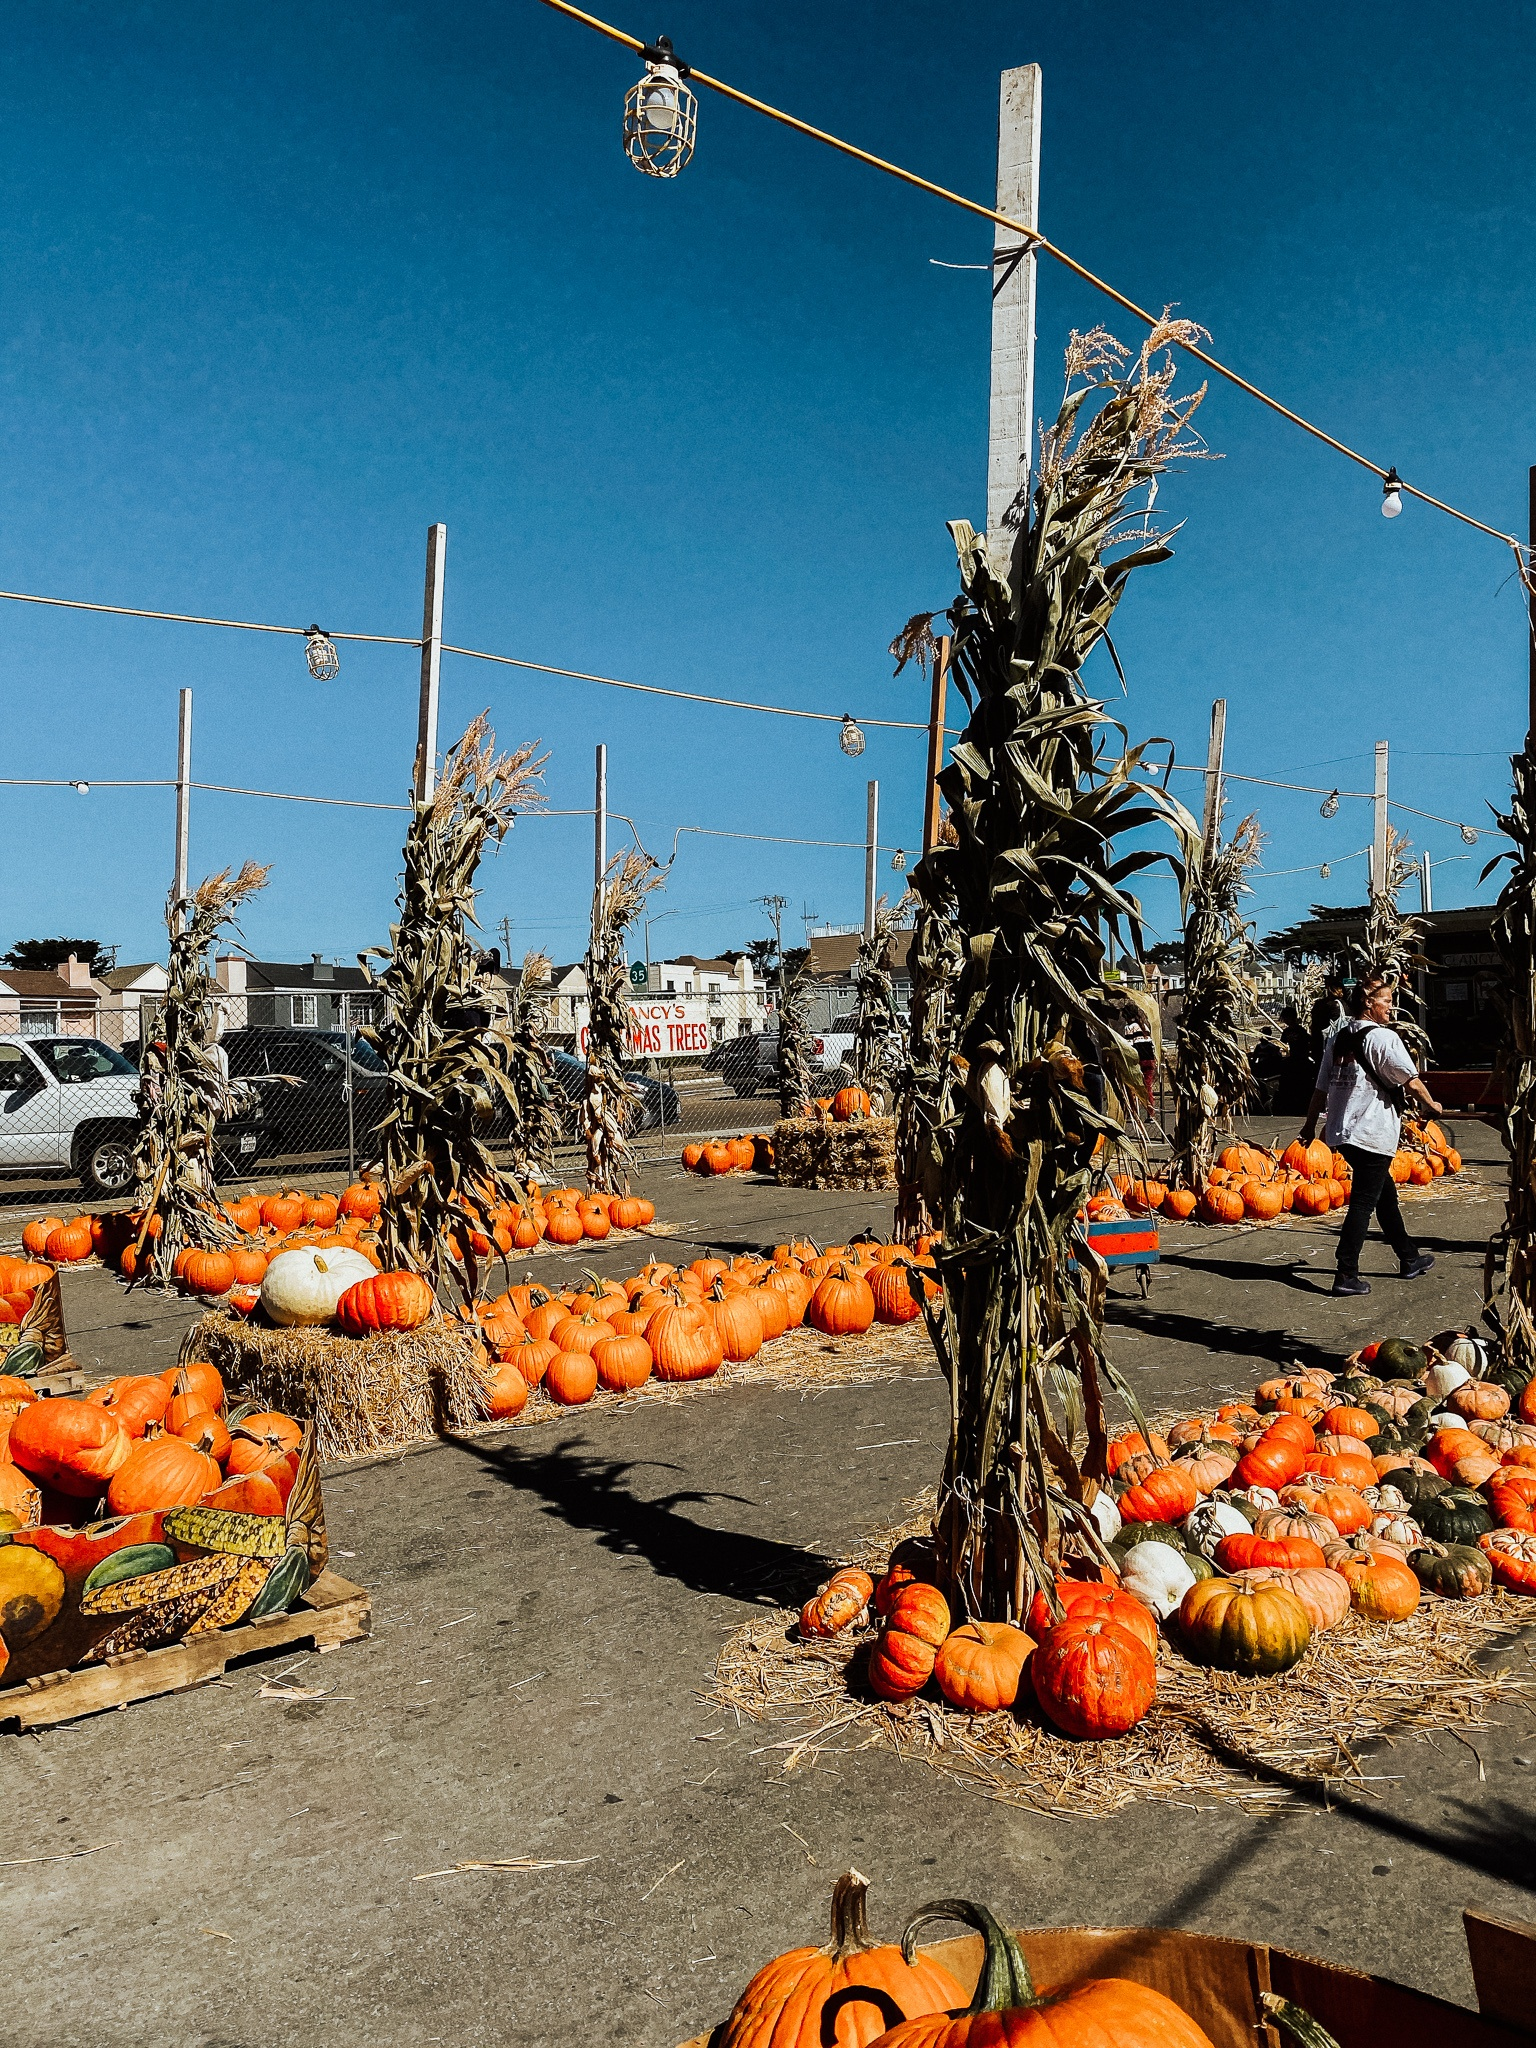 It's pumpkin patch season! Plan the perfect visit to a pumpkin patch near you with these easy tips and tricks!